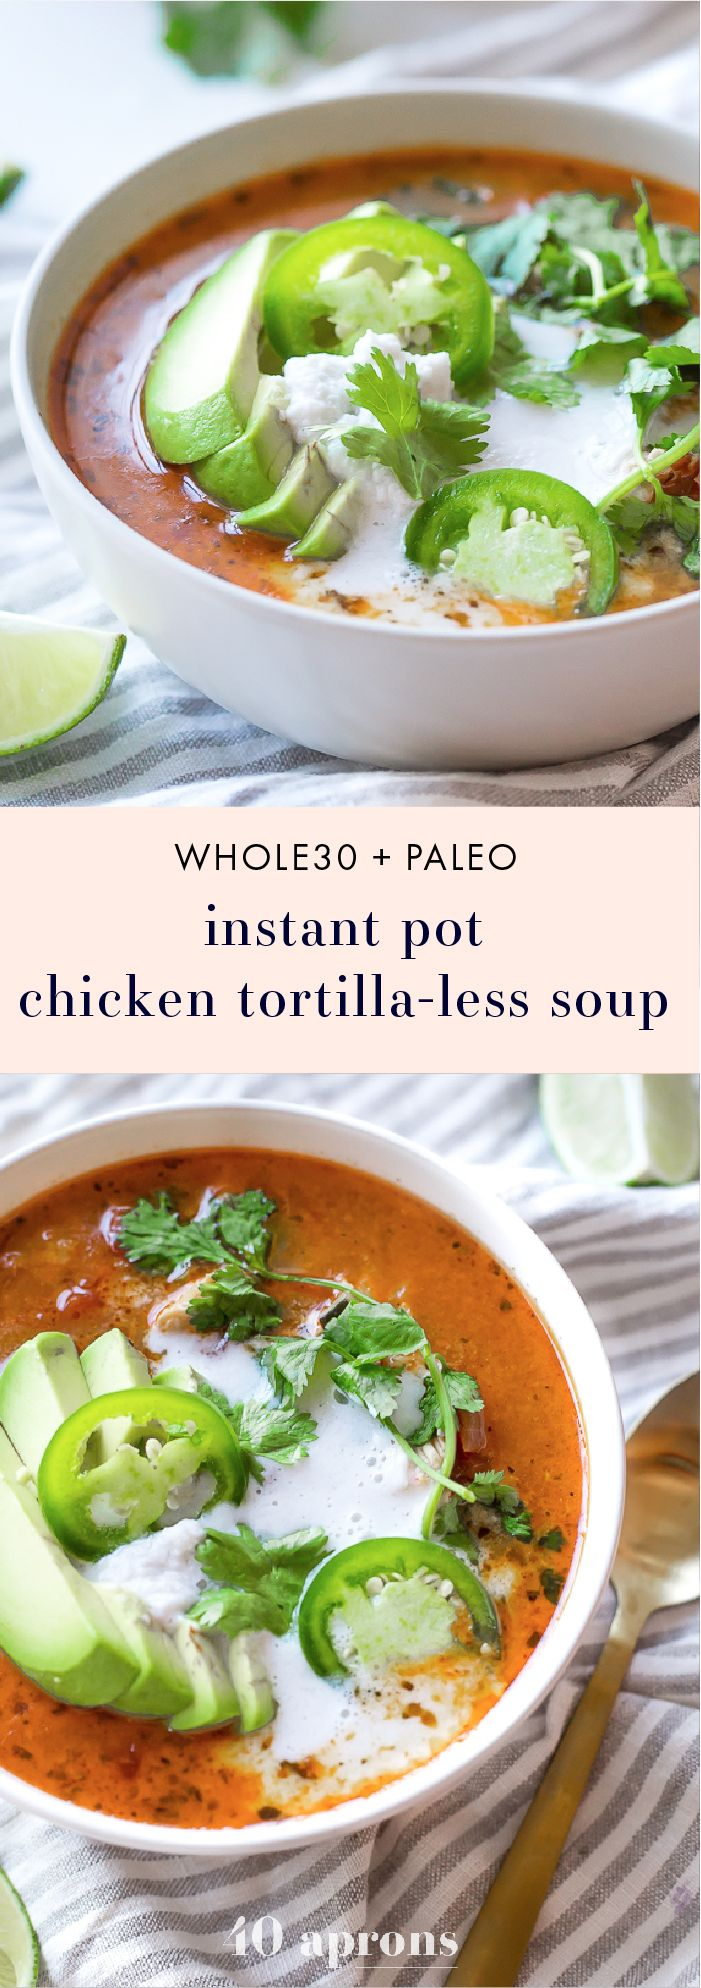 Photo of Whole30 Instant Pot Chicken Tortilla-Less Soup (Paleo)